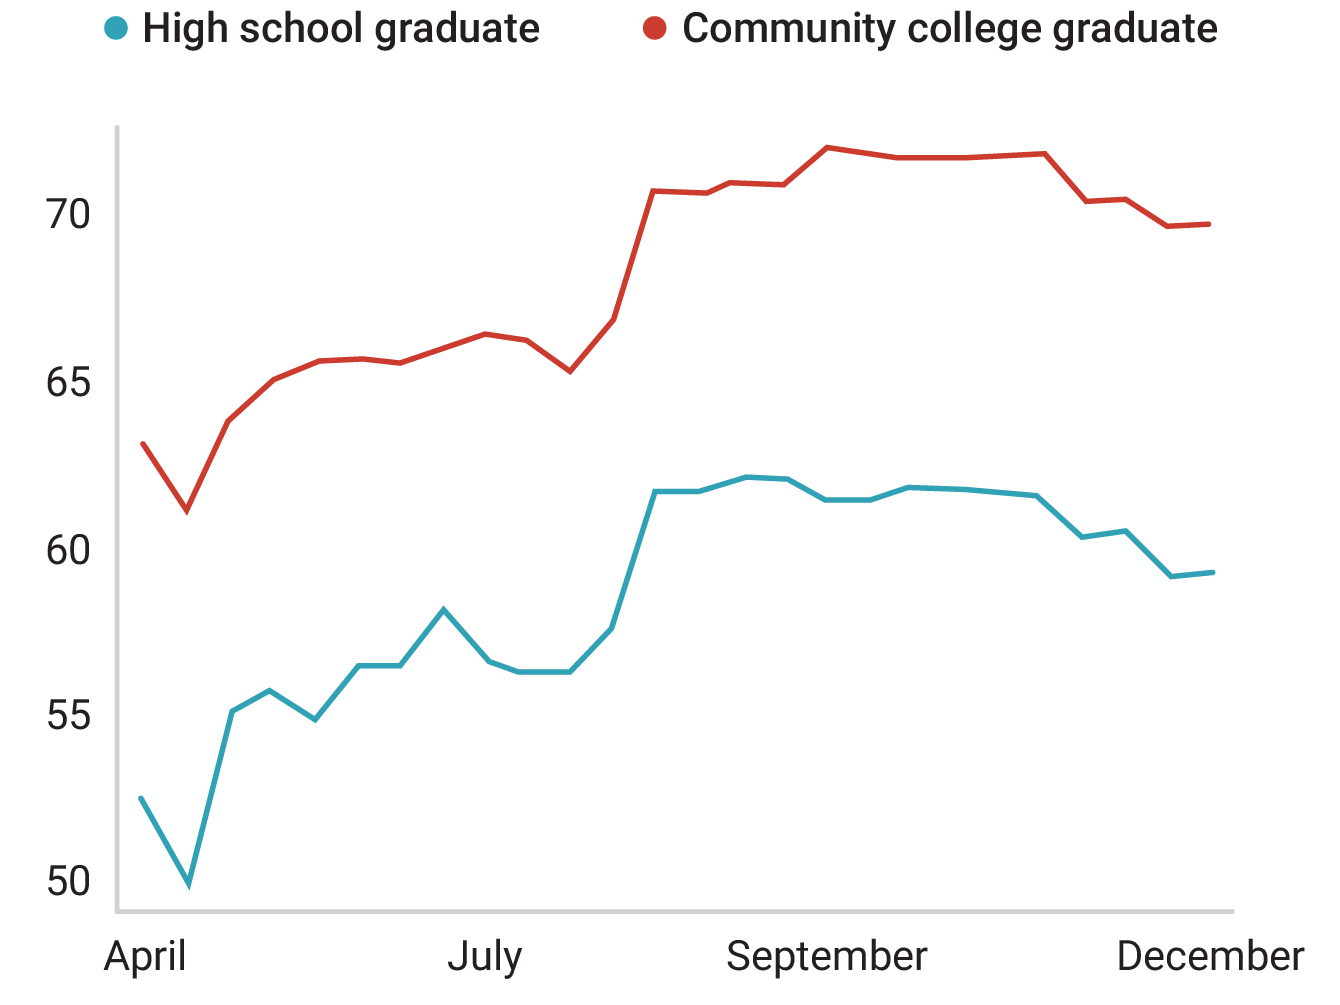 A line graph comparing employment rates for community college graduates and high school graduates over the course of 2020. Associates degree holders earn more on average.